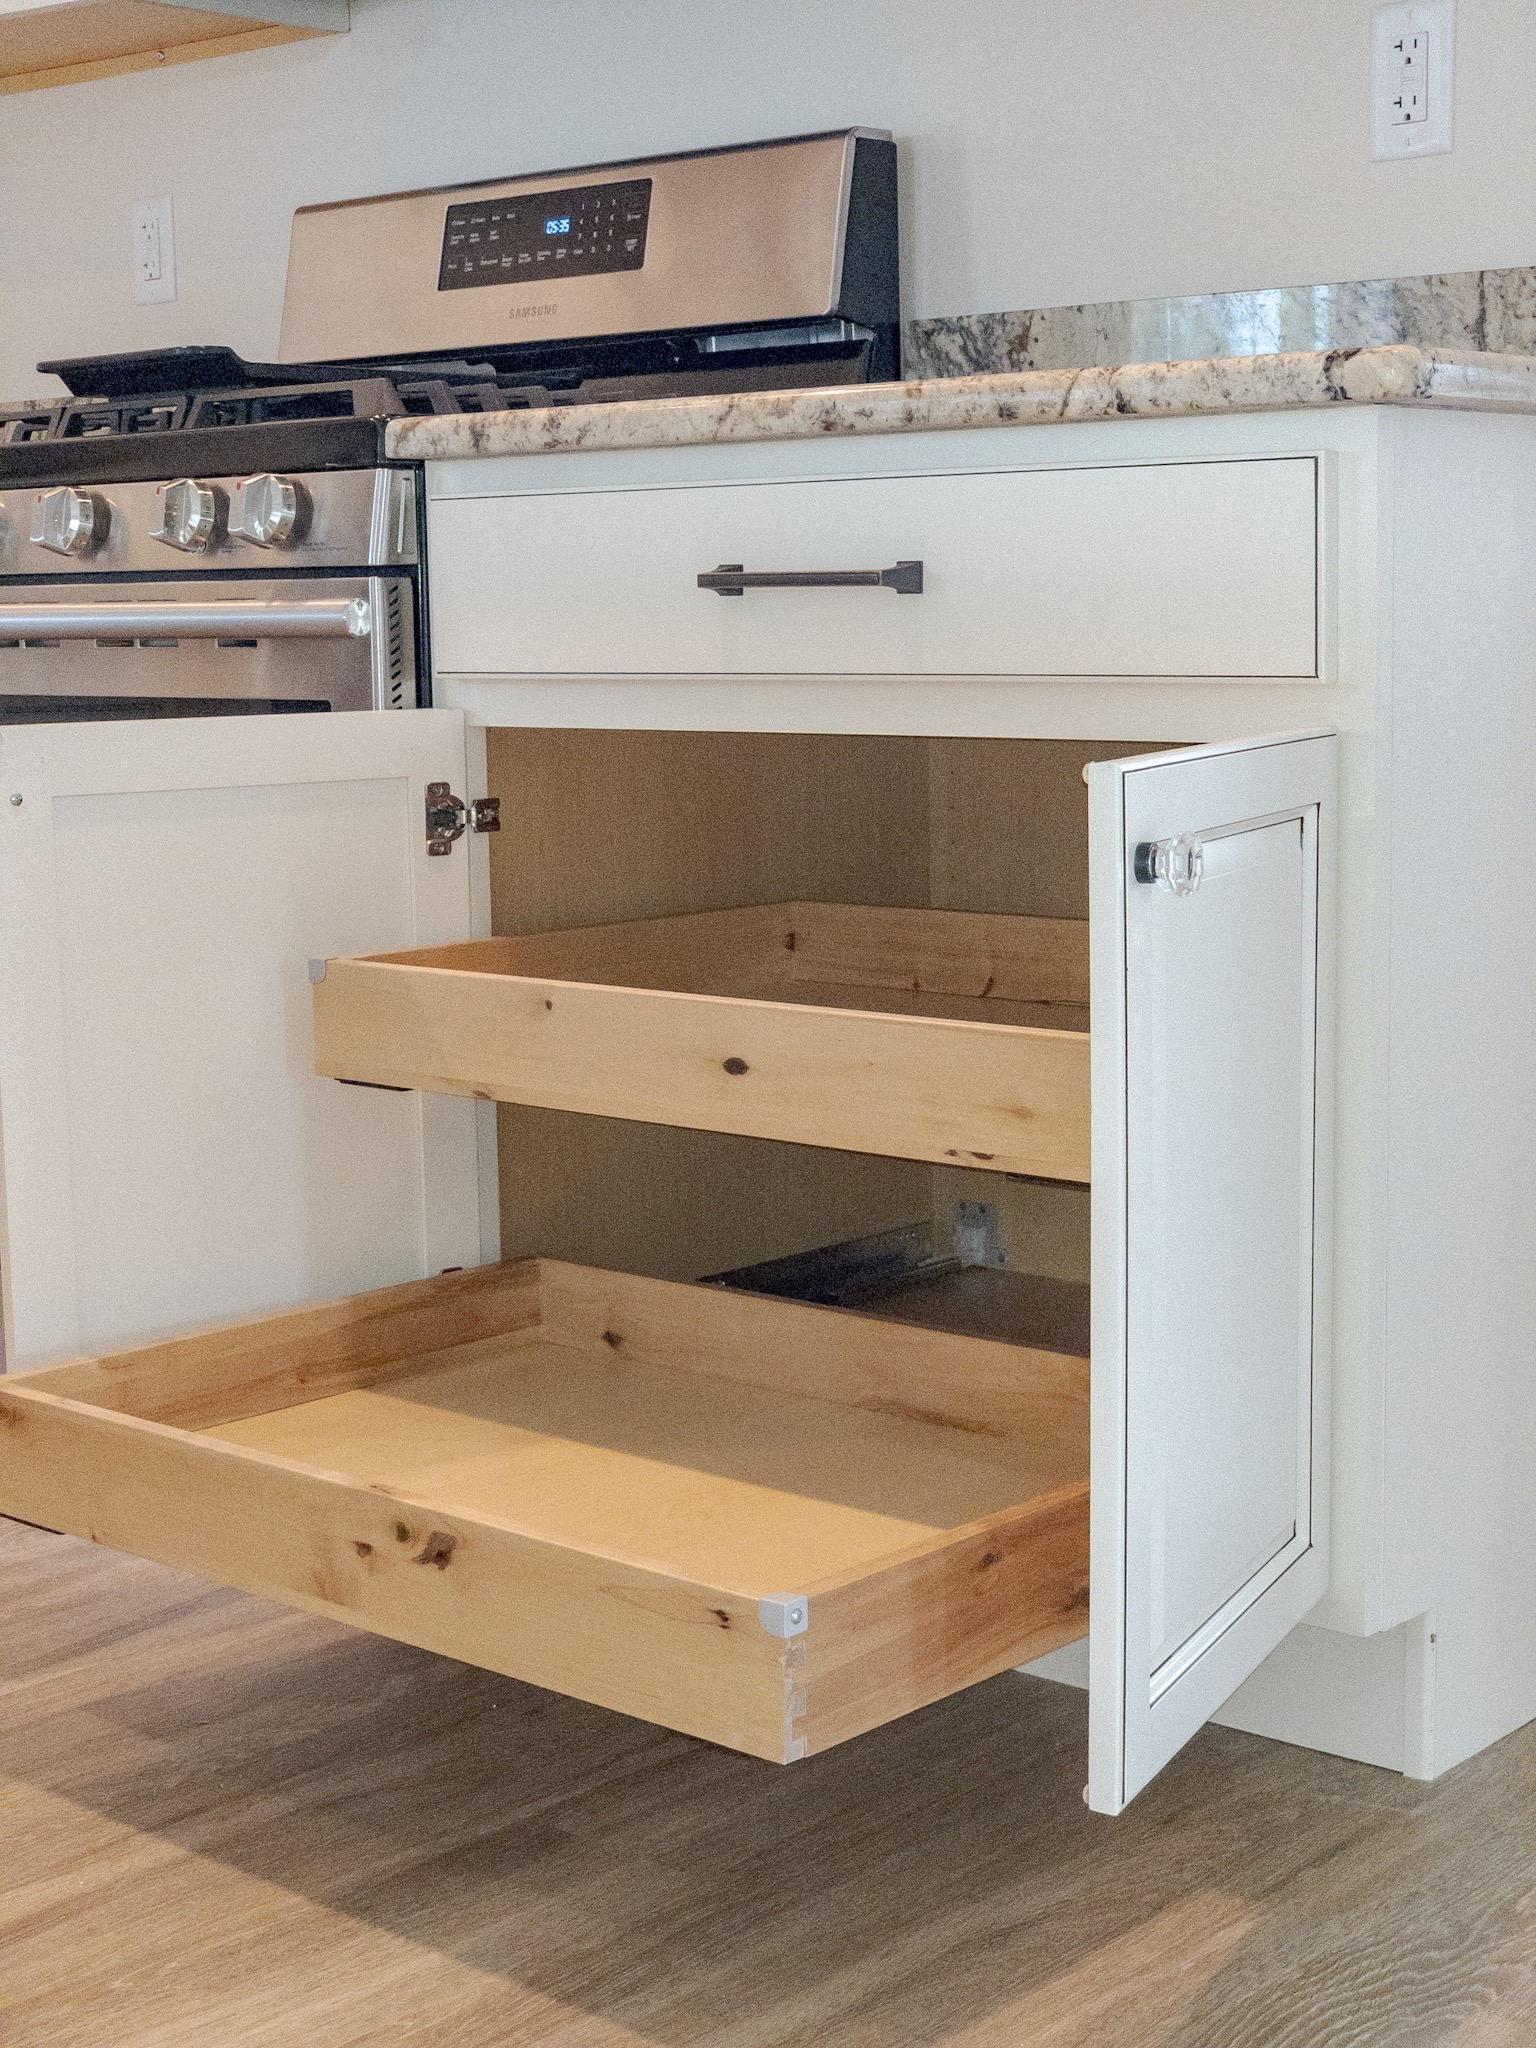 Kitchen pull outs in cabinet by gas range.jpg